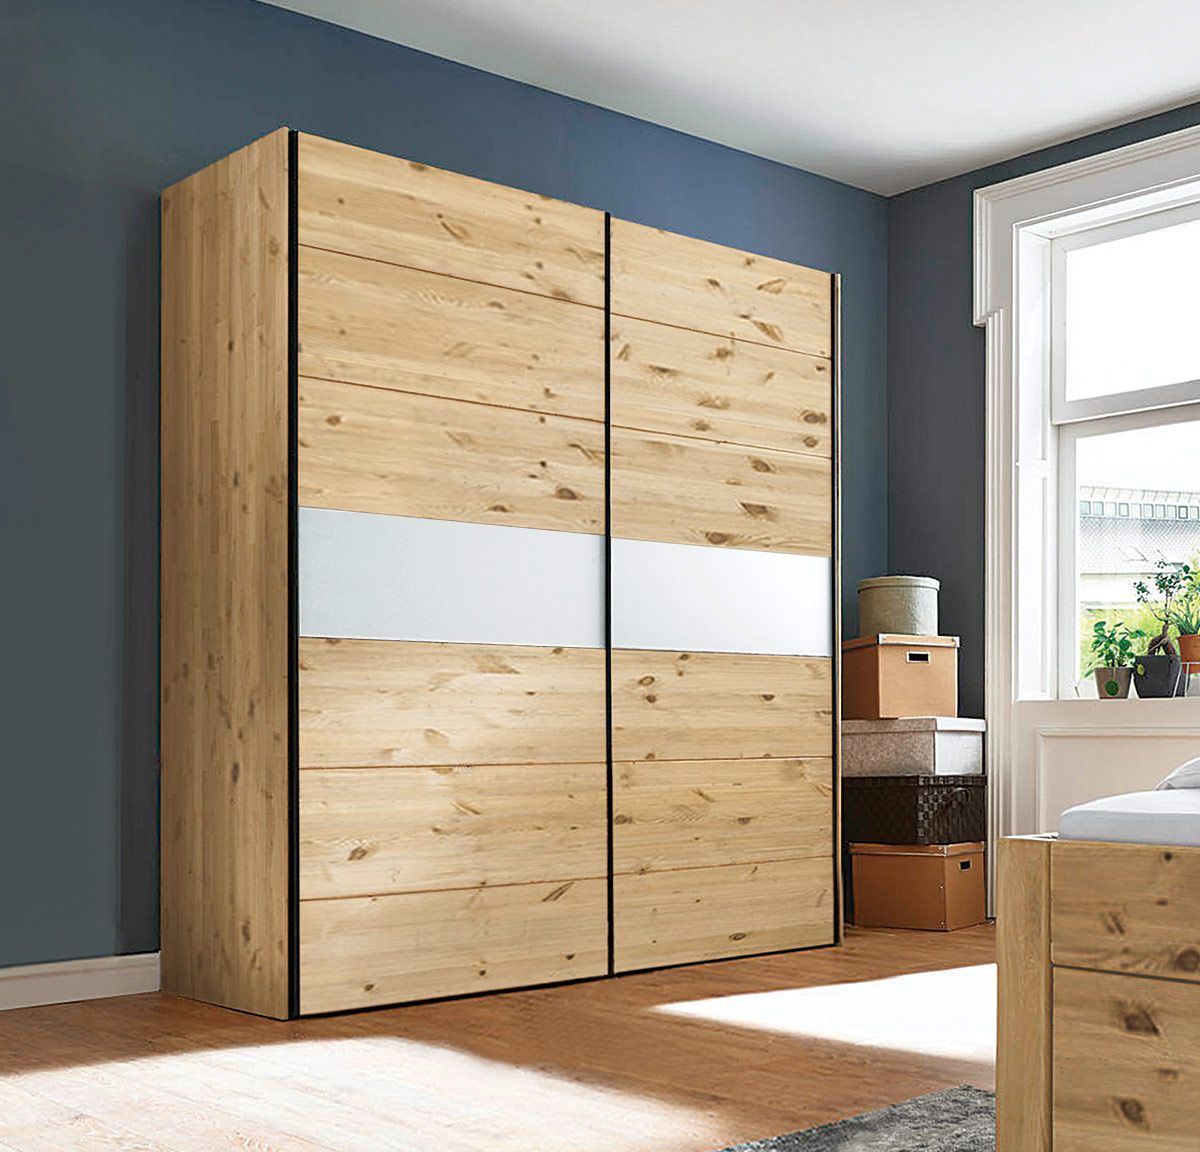 schiebet ren kleiderschrank midra 100 massiv kiefer oder wildeiche mit glas oder holz banderole. Black Bedroom Furniture Sets. Home Design Ideas